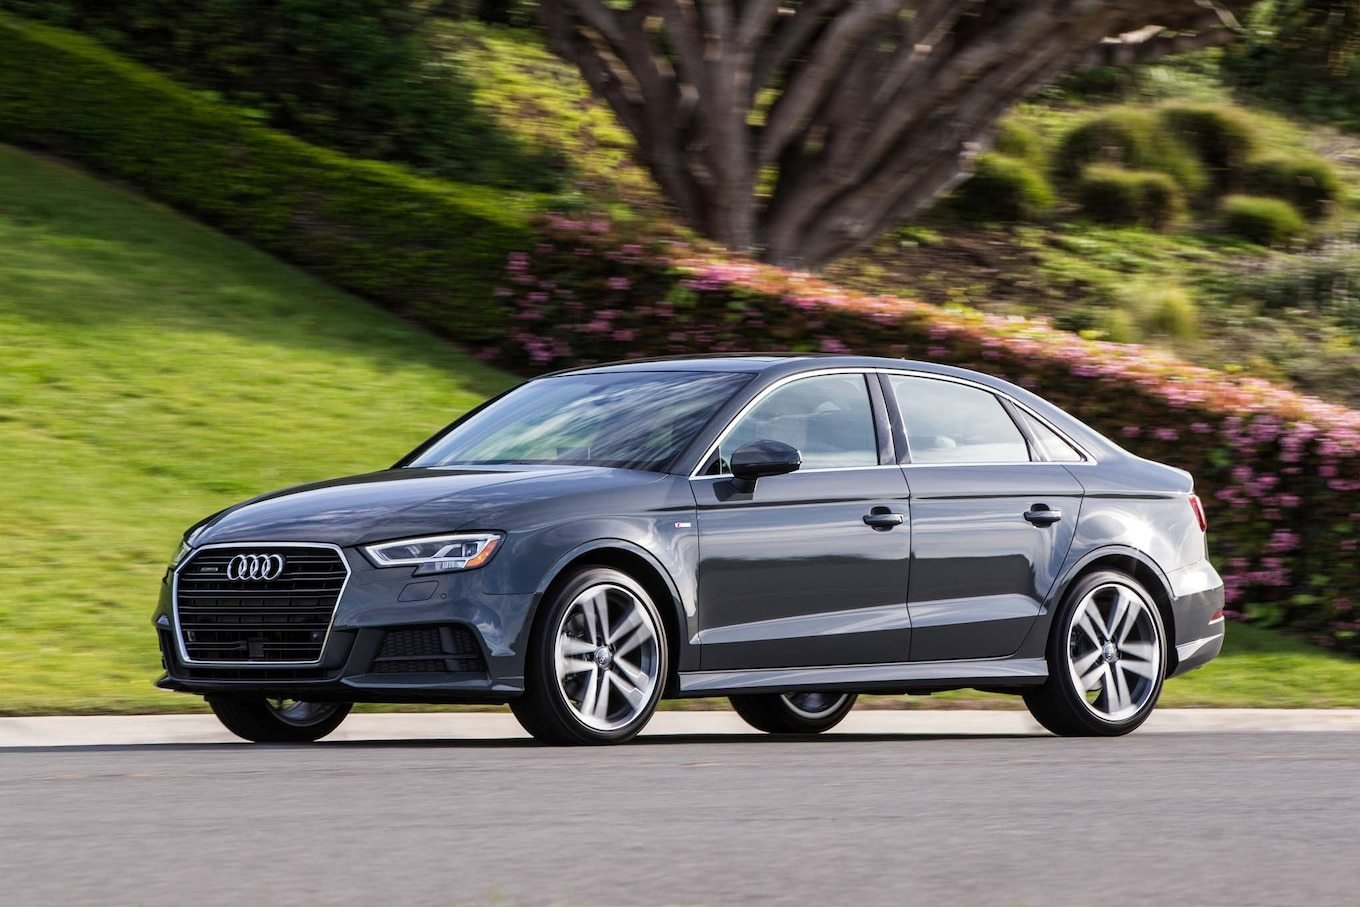 Latest 2017 Audi A3 2 0T Fwd Review 7 Things To Know Motor Trend Free Download